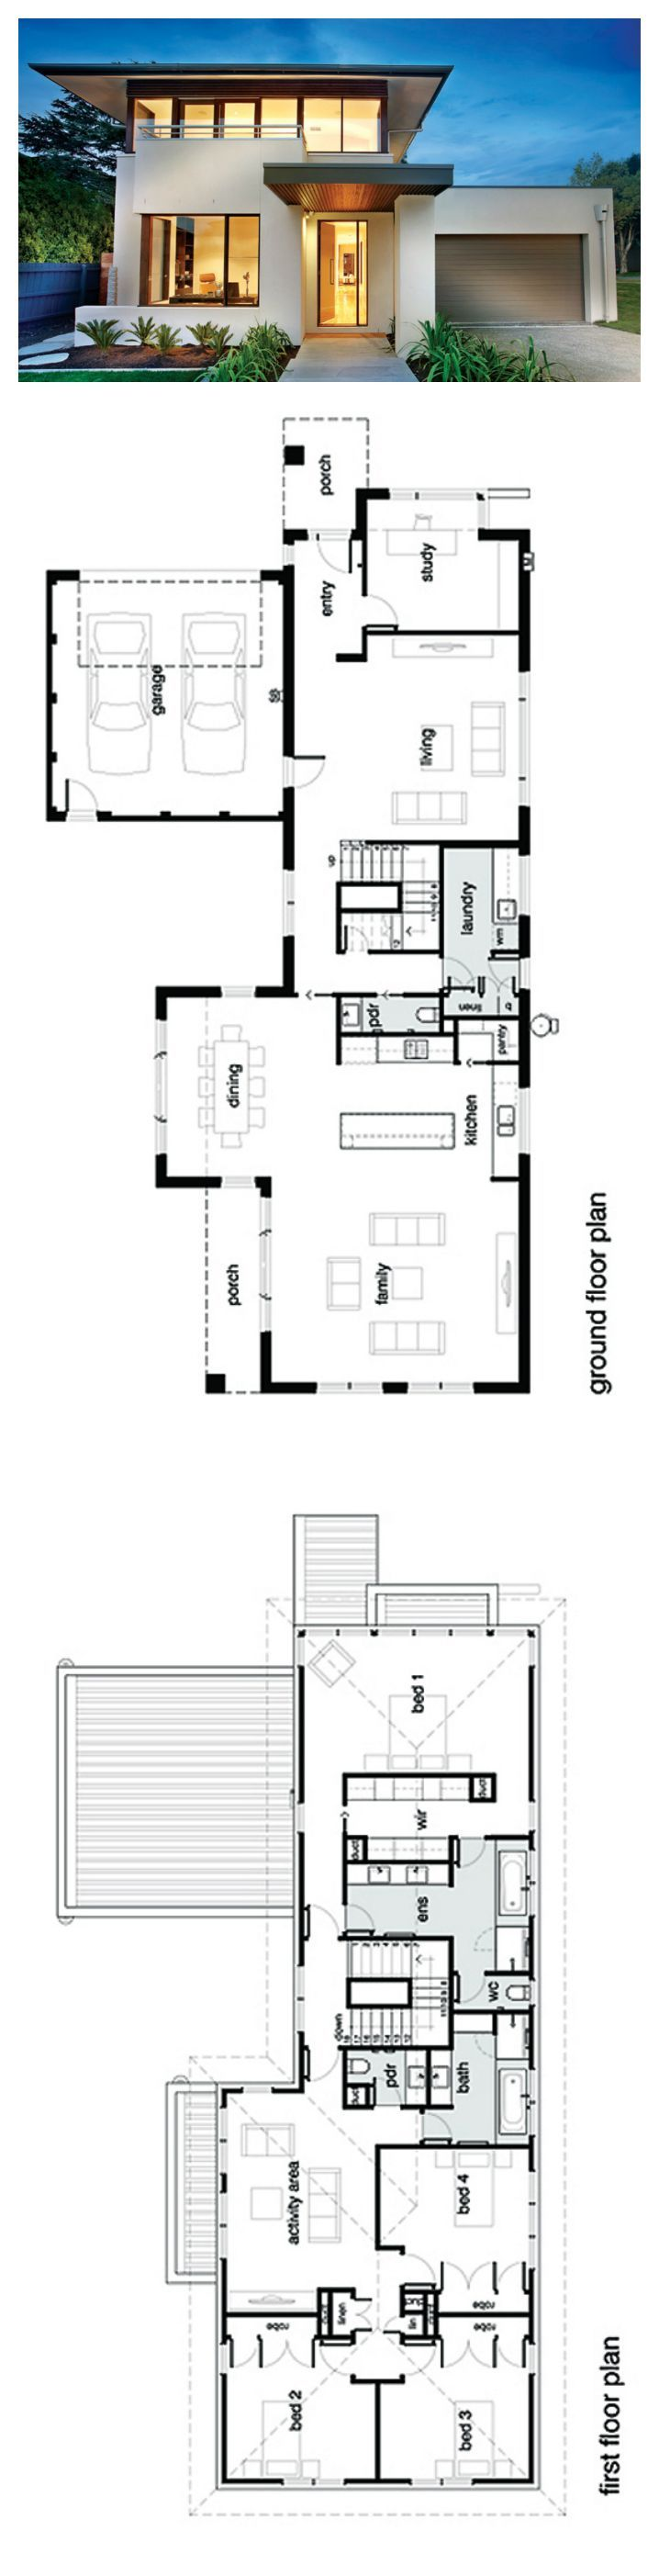 Best 25 modern house plans ideas on pinterest for Contemporary house plans two story